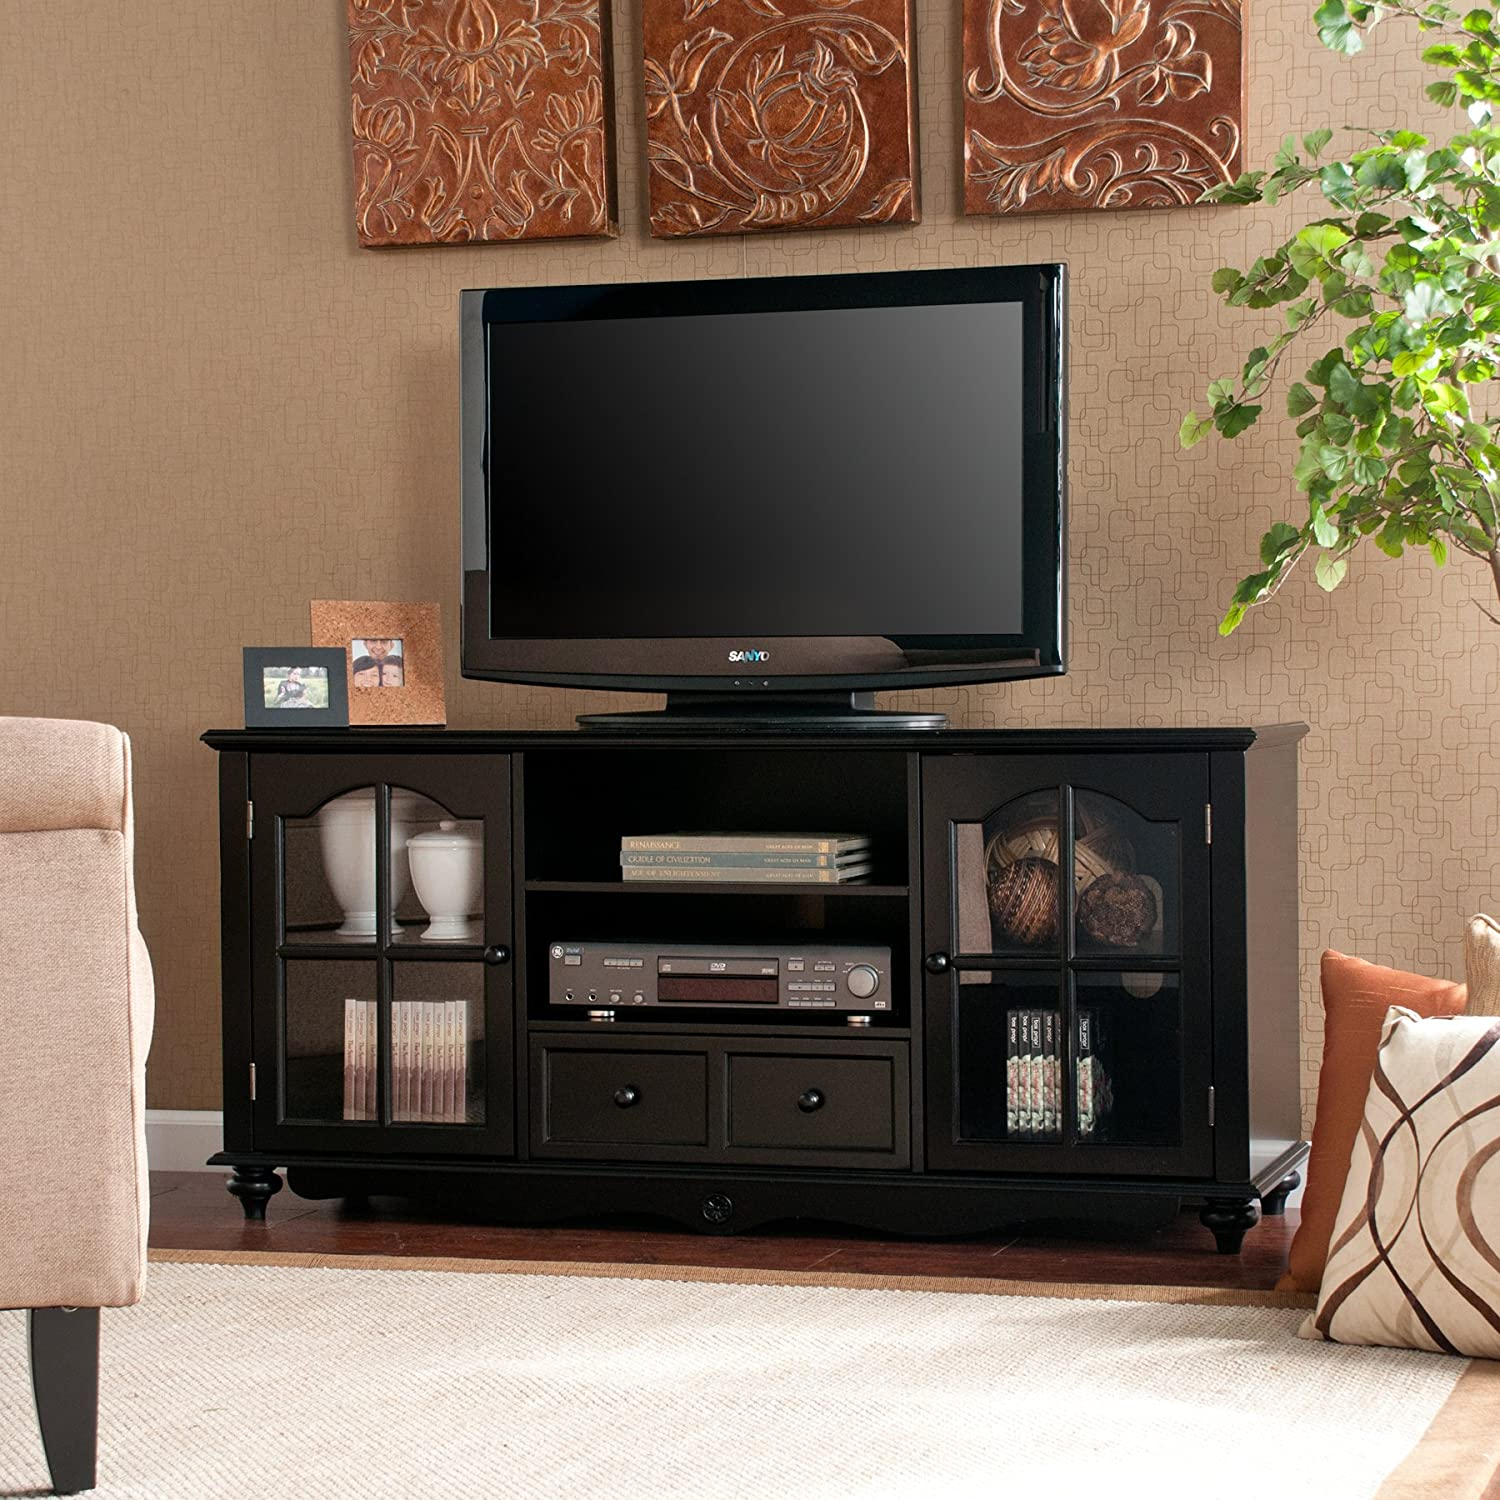 amazoncom coventry  tv console  antique black kitchen  dining -